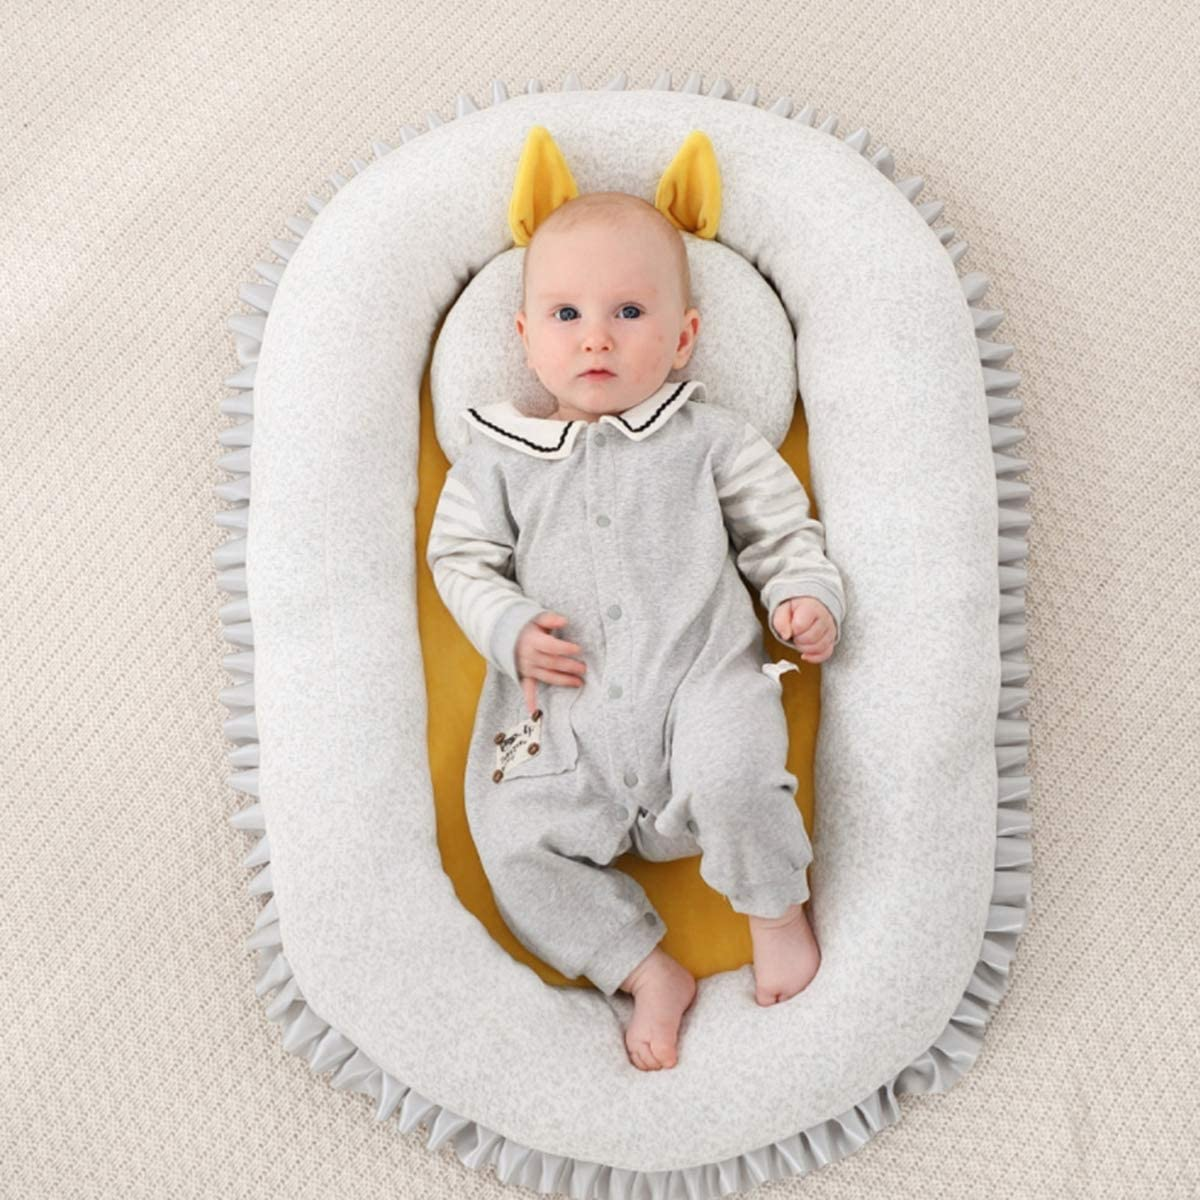 Portable Baby Cot Bed Soft Baby Nest Baby Bassinet Cribs for 0-1 Year Old Babies HelloCreate Newborn Crib